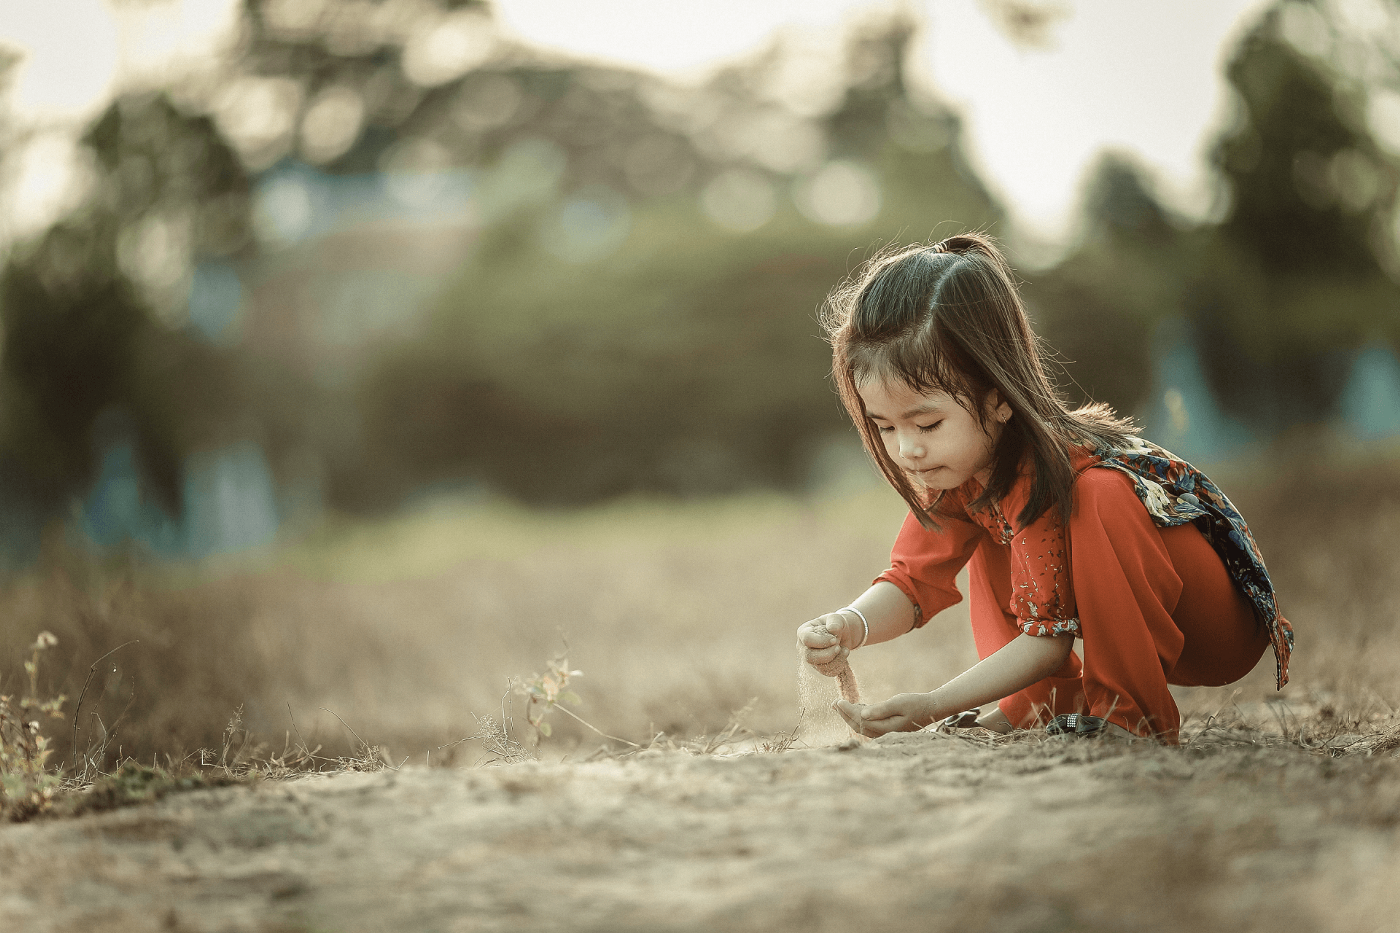 Girl in red playing with sand.